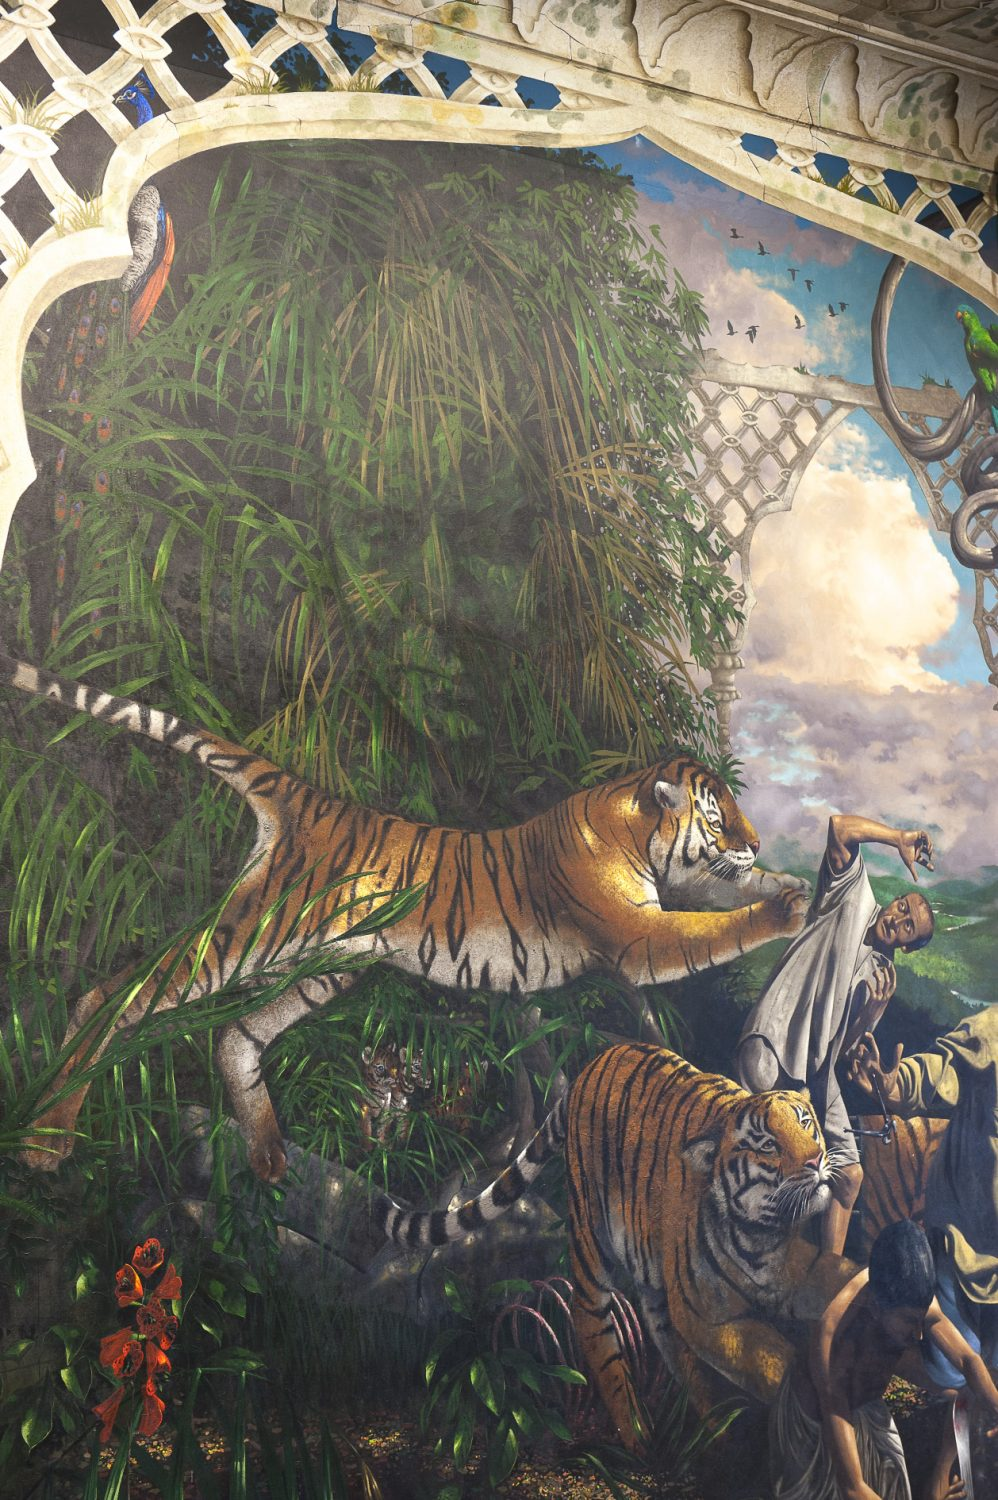 In the Martin Jordan meeting room floor-to-ceiling murals depict scenes of endangered wildlife. Subtly painted to be disguised within foliage, and only visible from certain angles, the face of John Aspinall looms above a tiger defending her young from poachers – a poignant reminder of the plight of some of the world's most vulnerable species and how they must be protected